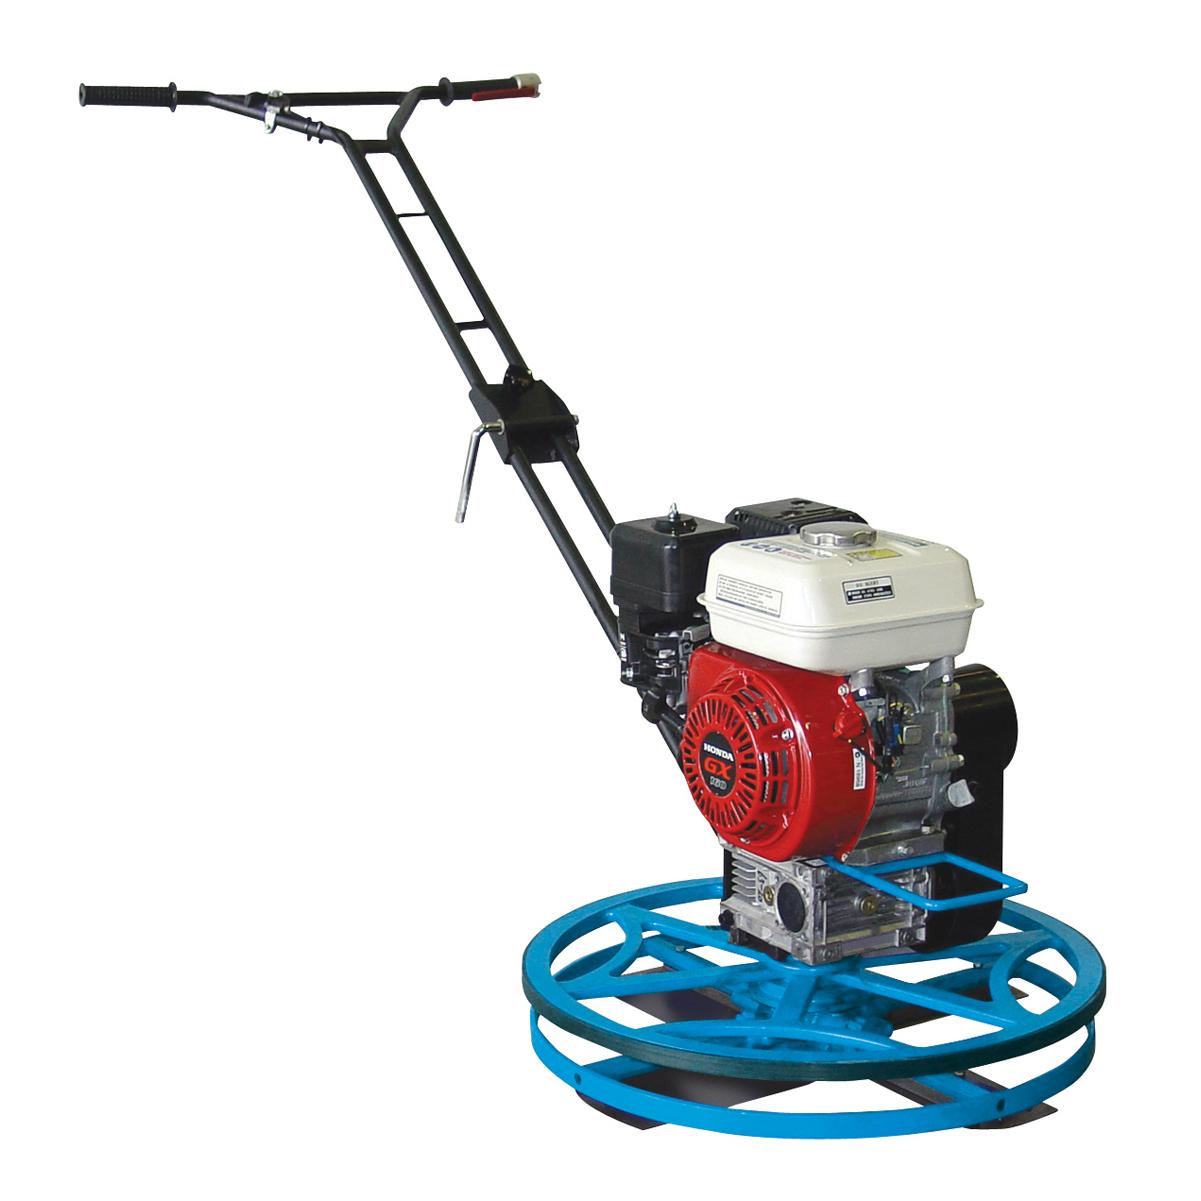 OX Prof 24 Trowelling Machine 5.5hp